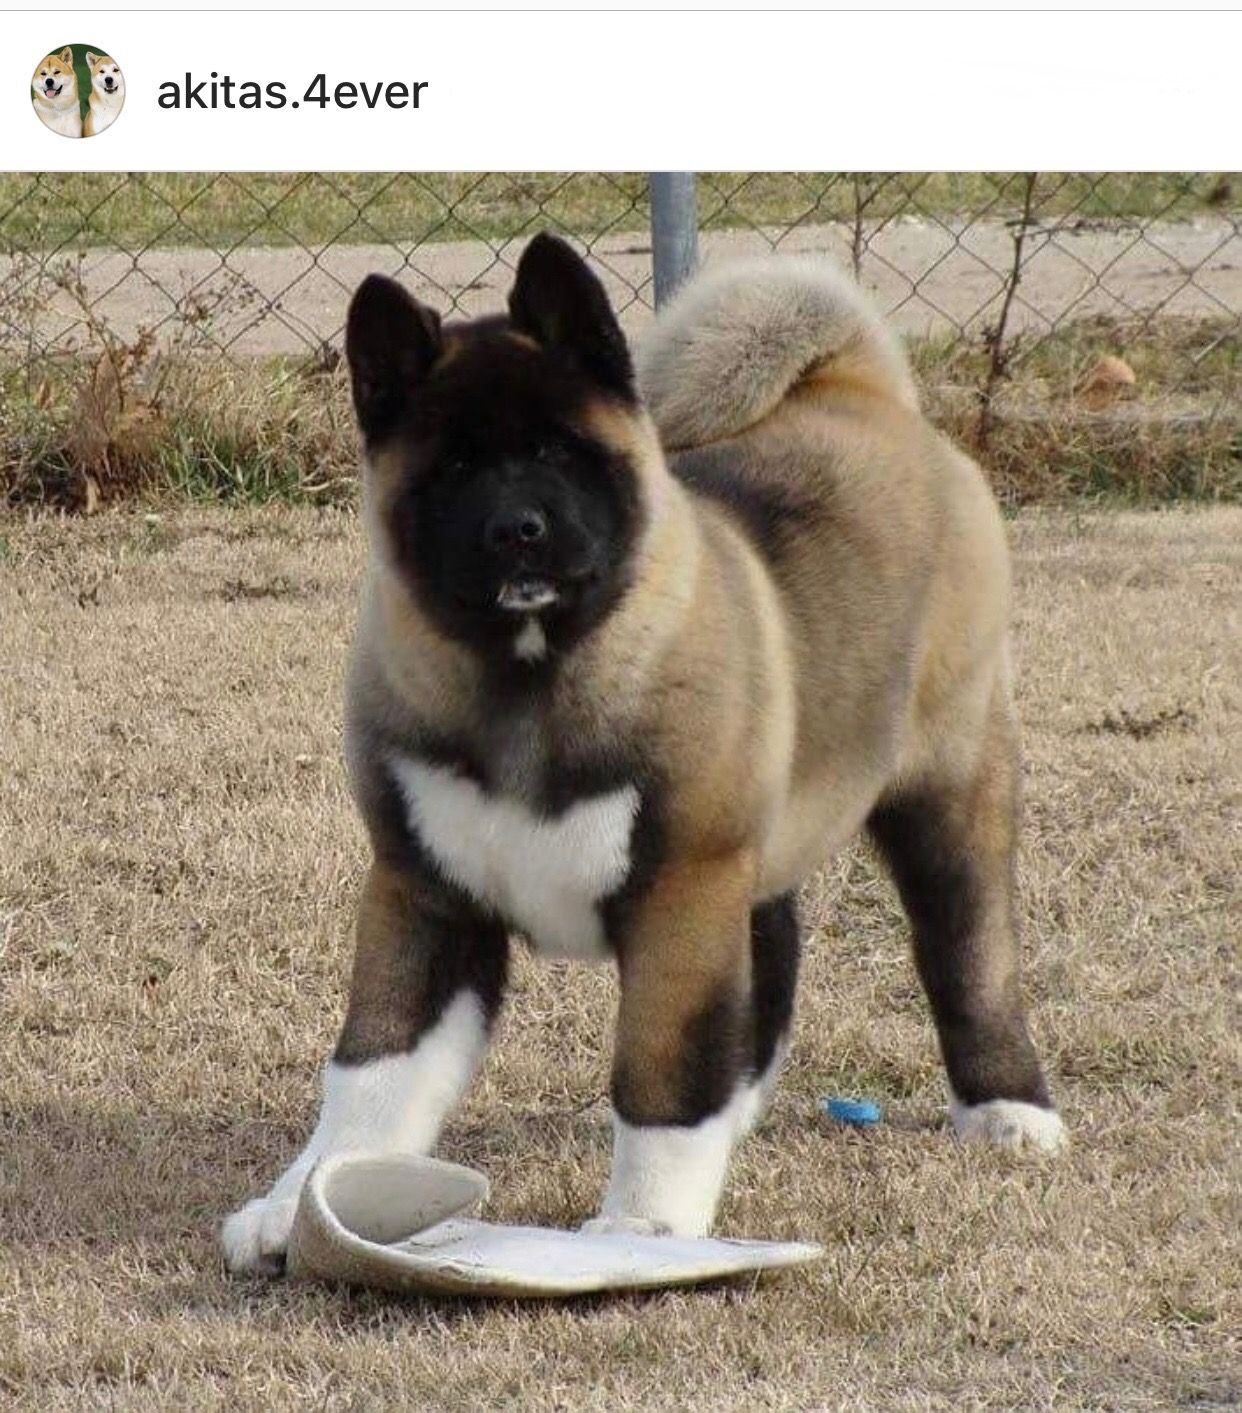 Akitapuppy Wow This Looks Just Like My Akita When She Was A Pup